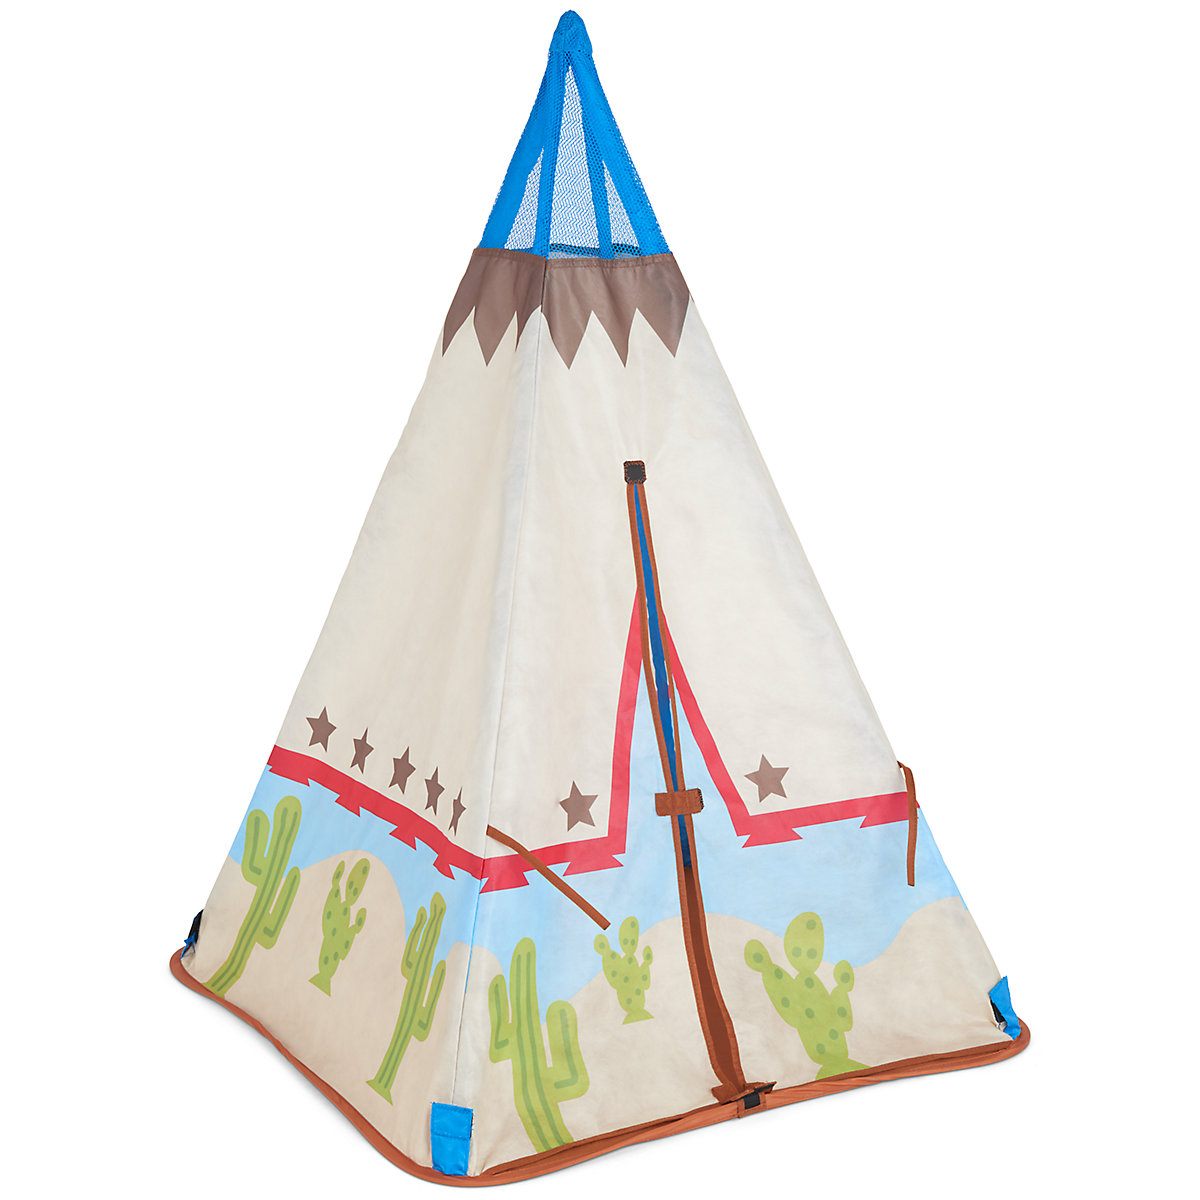 Cowboy Teepee Toy From 2 years